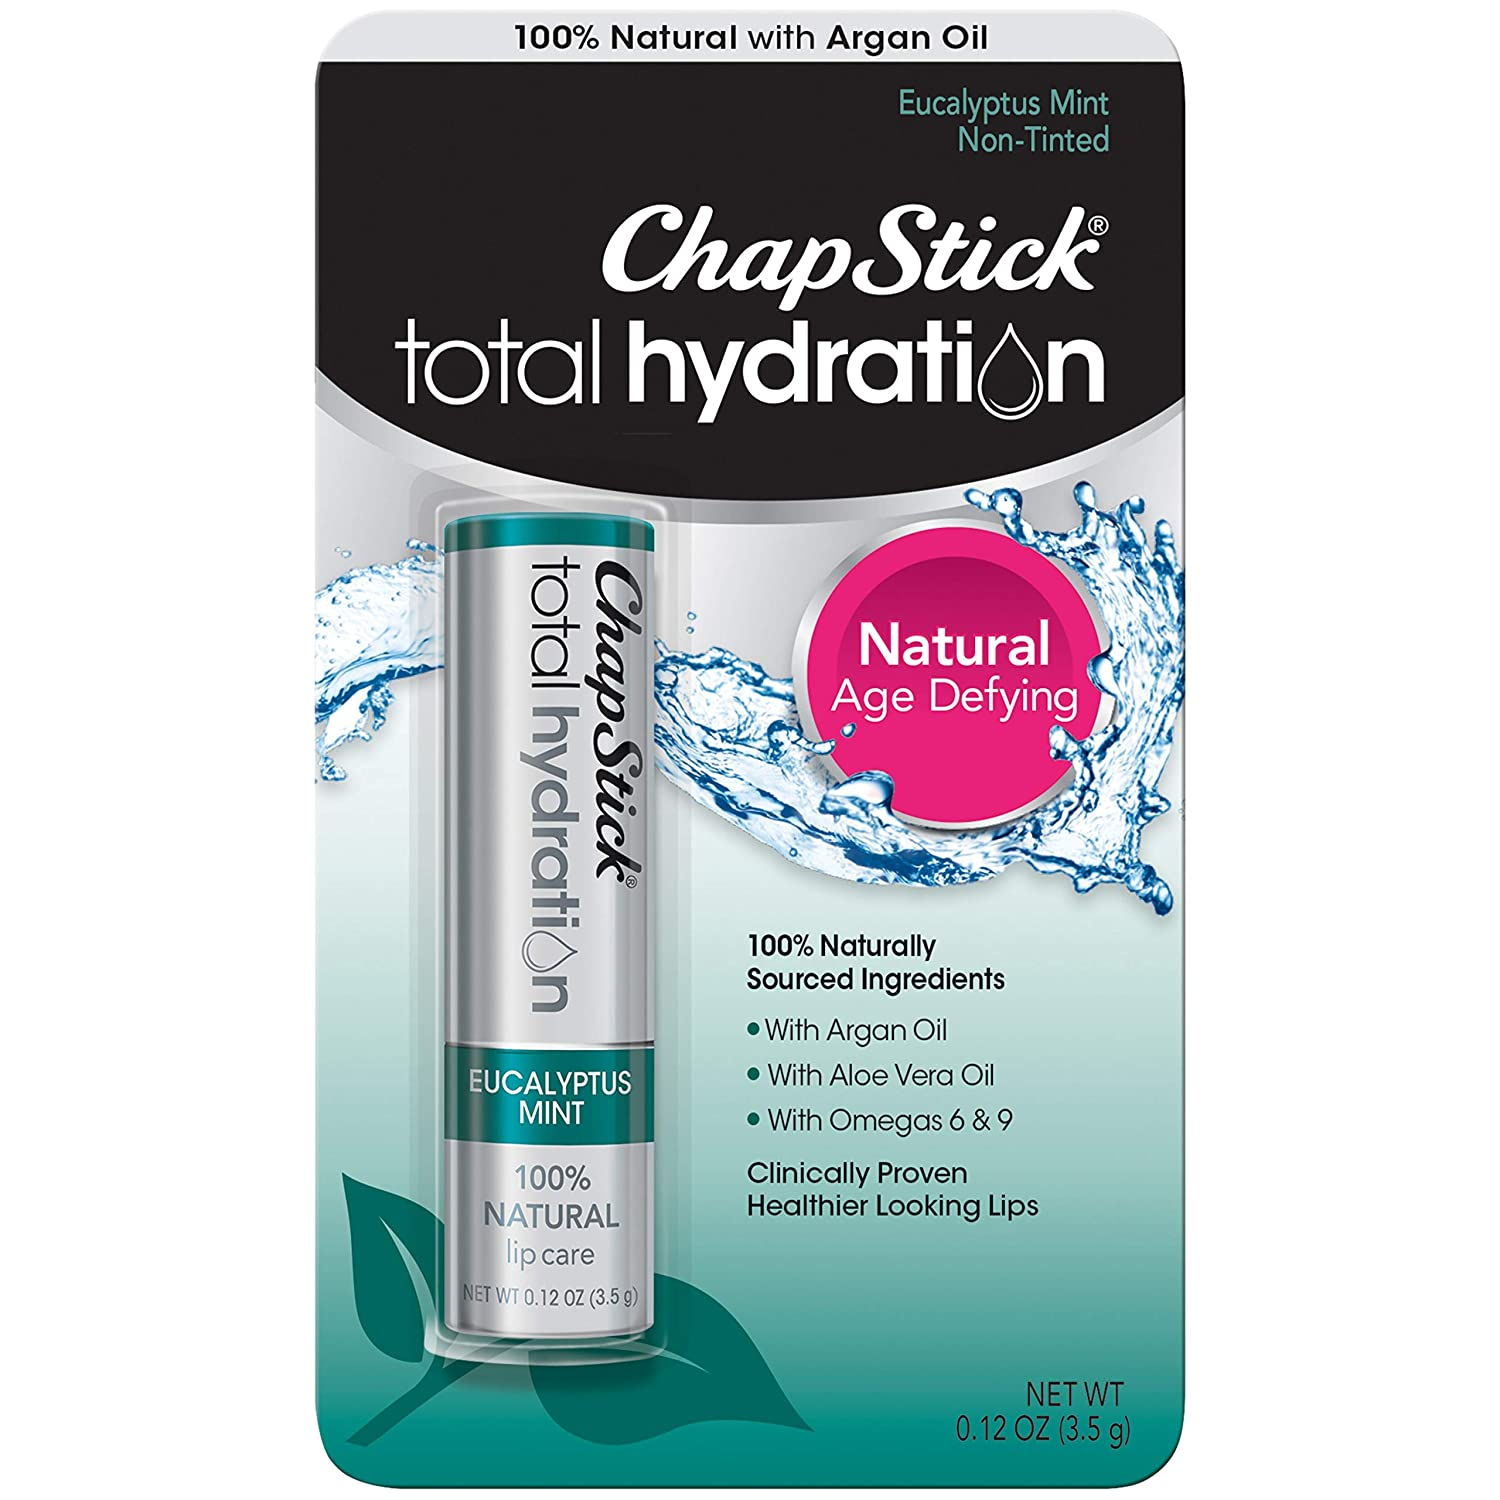 ChapStick Total Hydration (Coconut Hydration Flavor, 1 Blister Pack of 1 Stick) Flavored Lip Balm Tube, 3 in 1 Lip Care, Contains Omegas 3/6/9, 0.12 Ounce Pfizer Consumer Healthcare